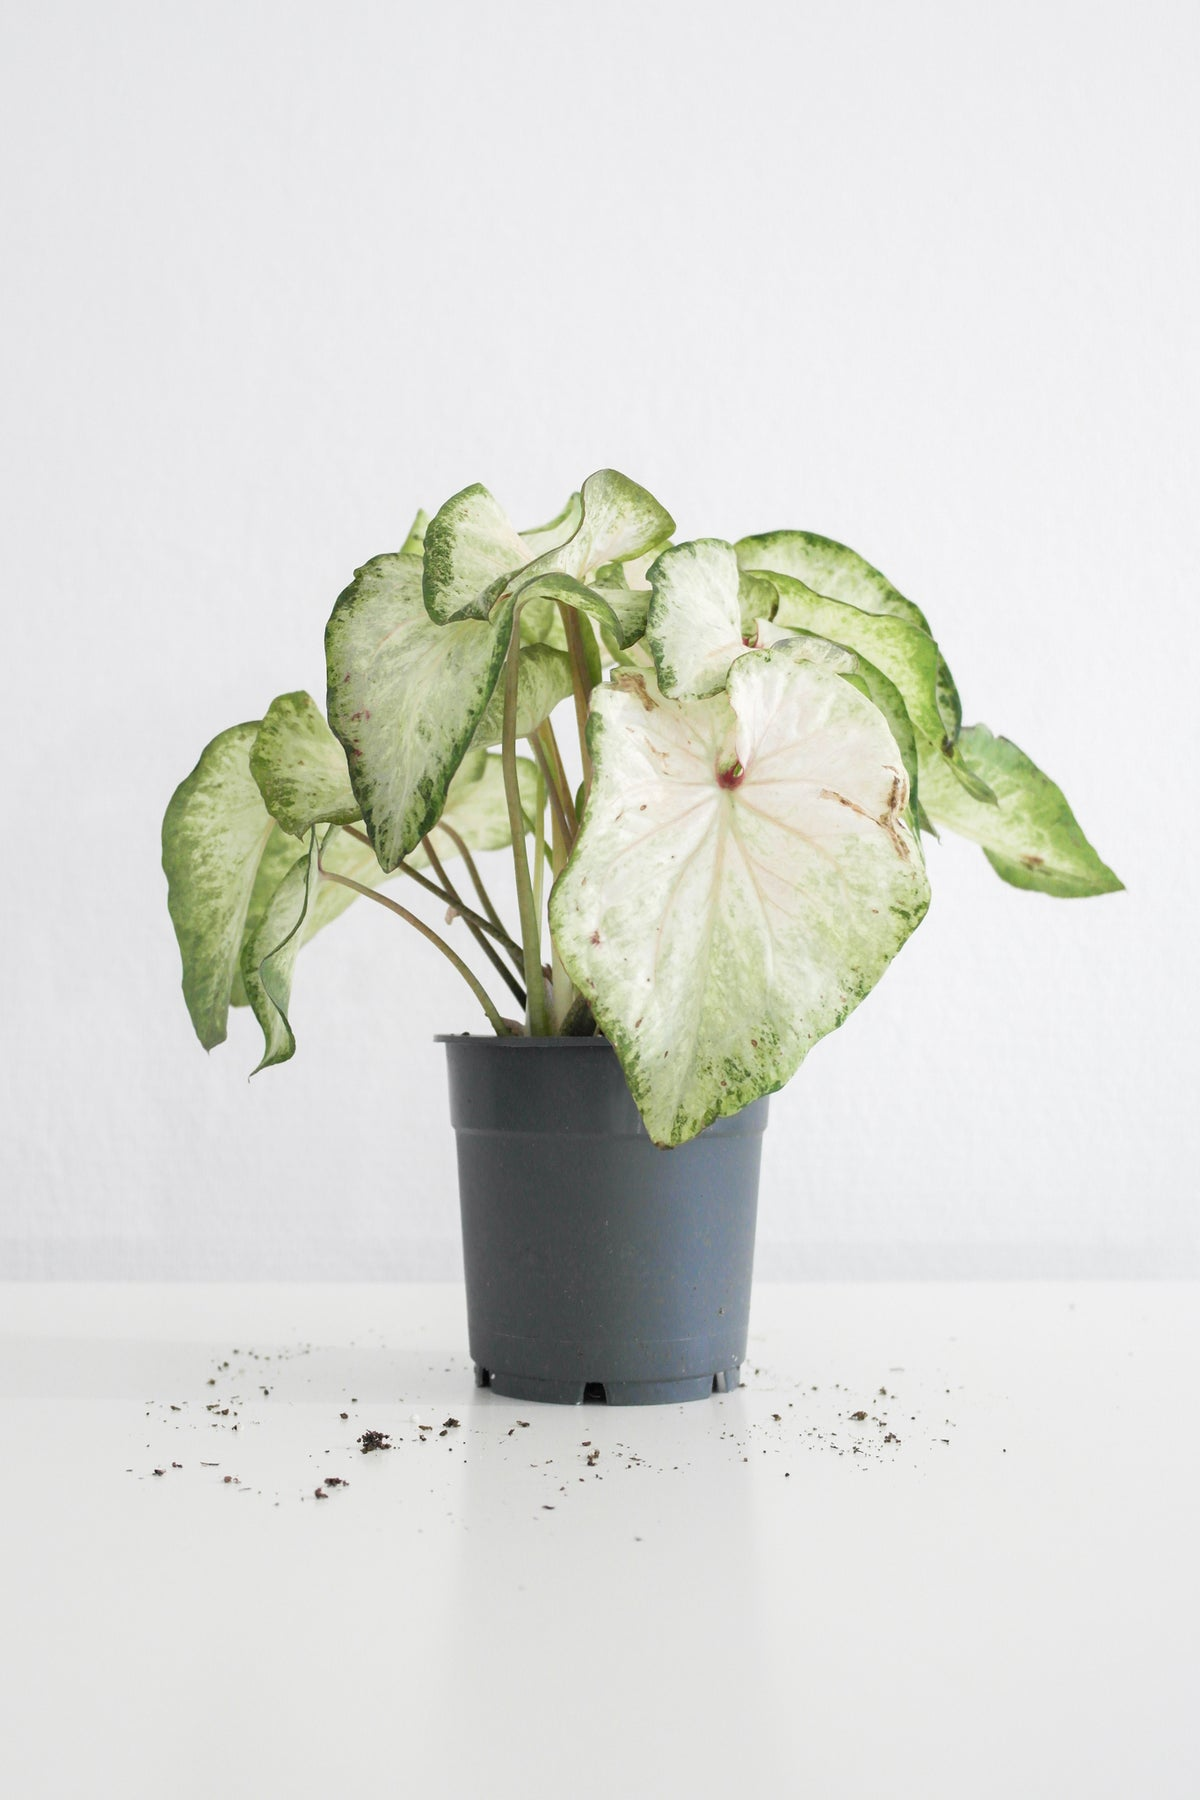 Caladium White Star